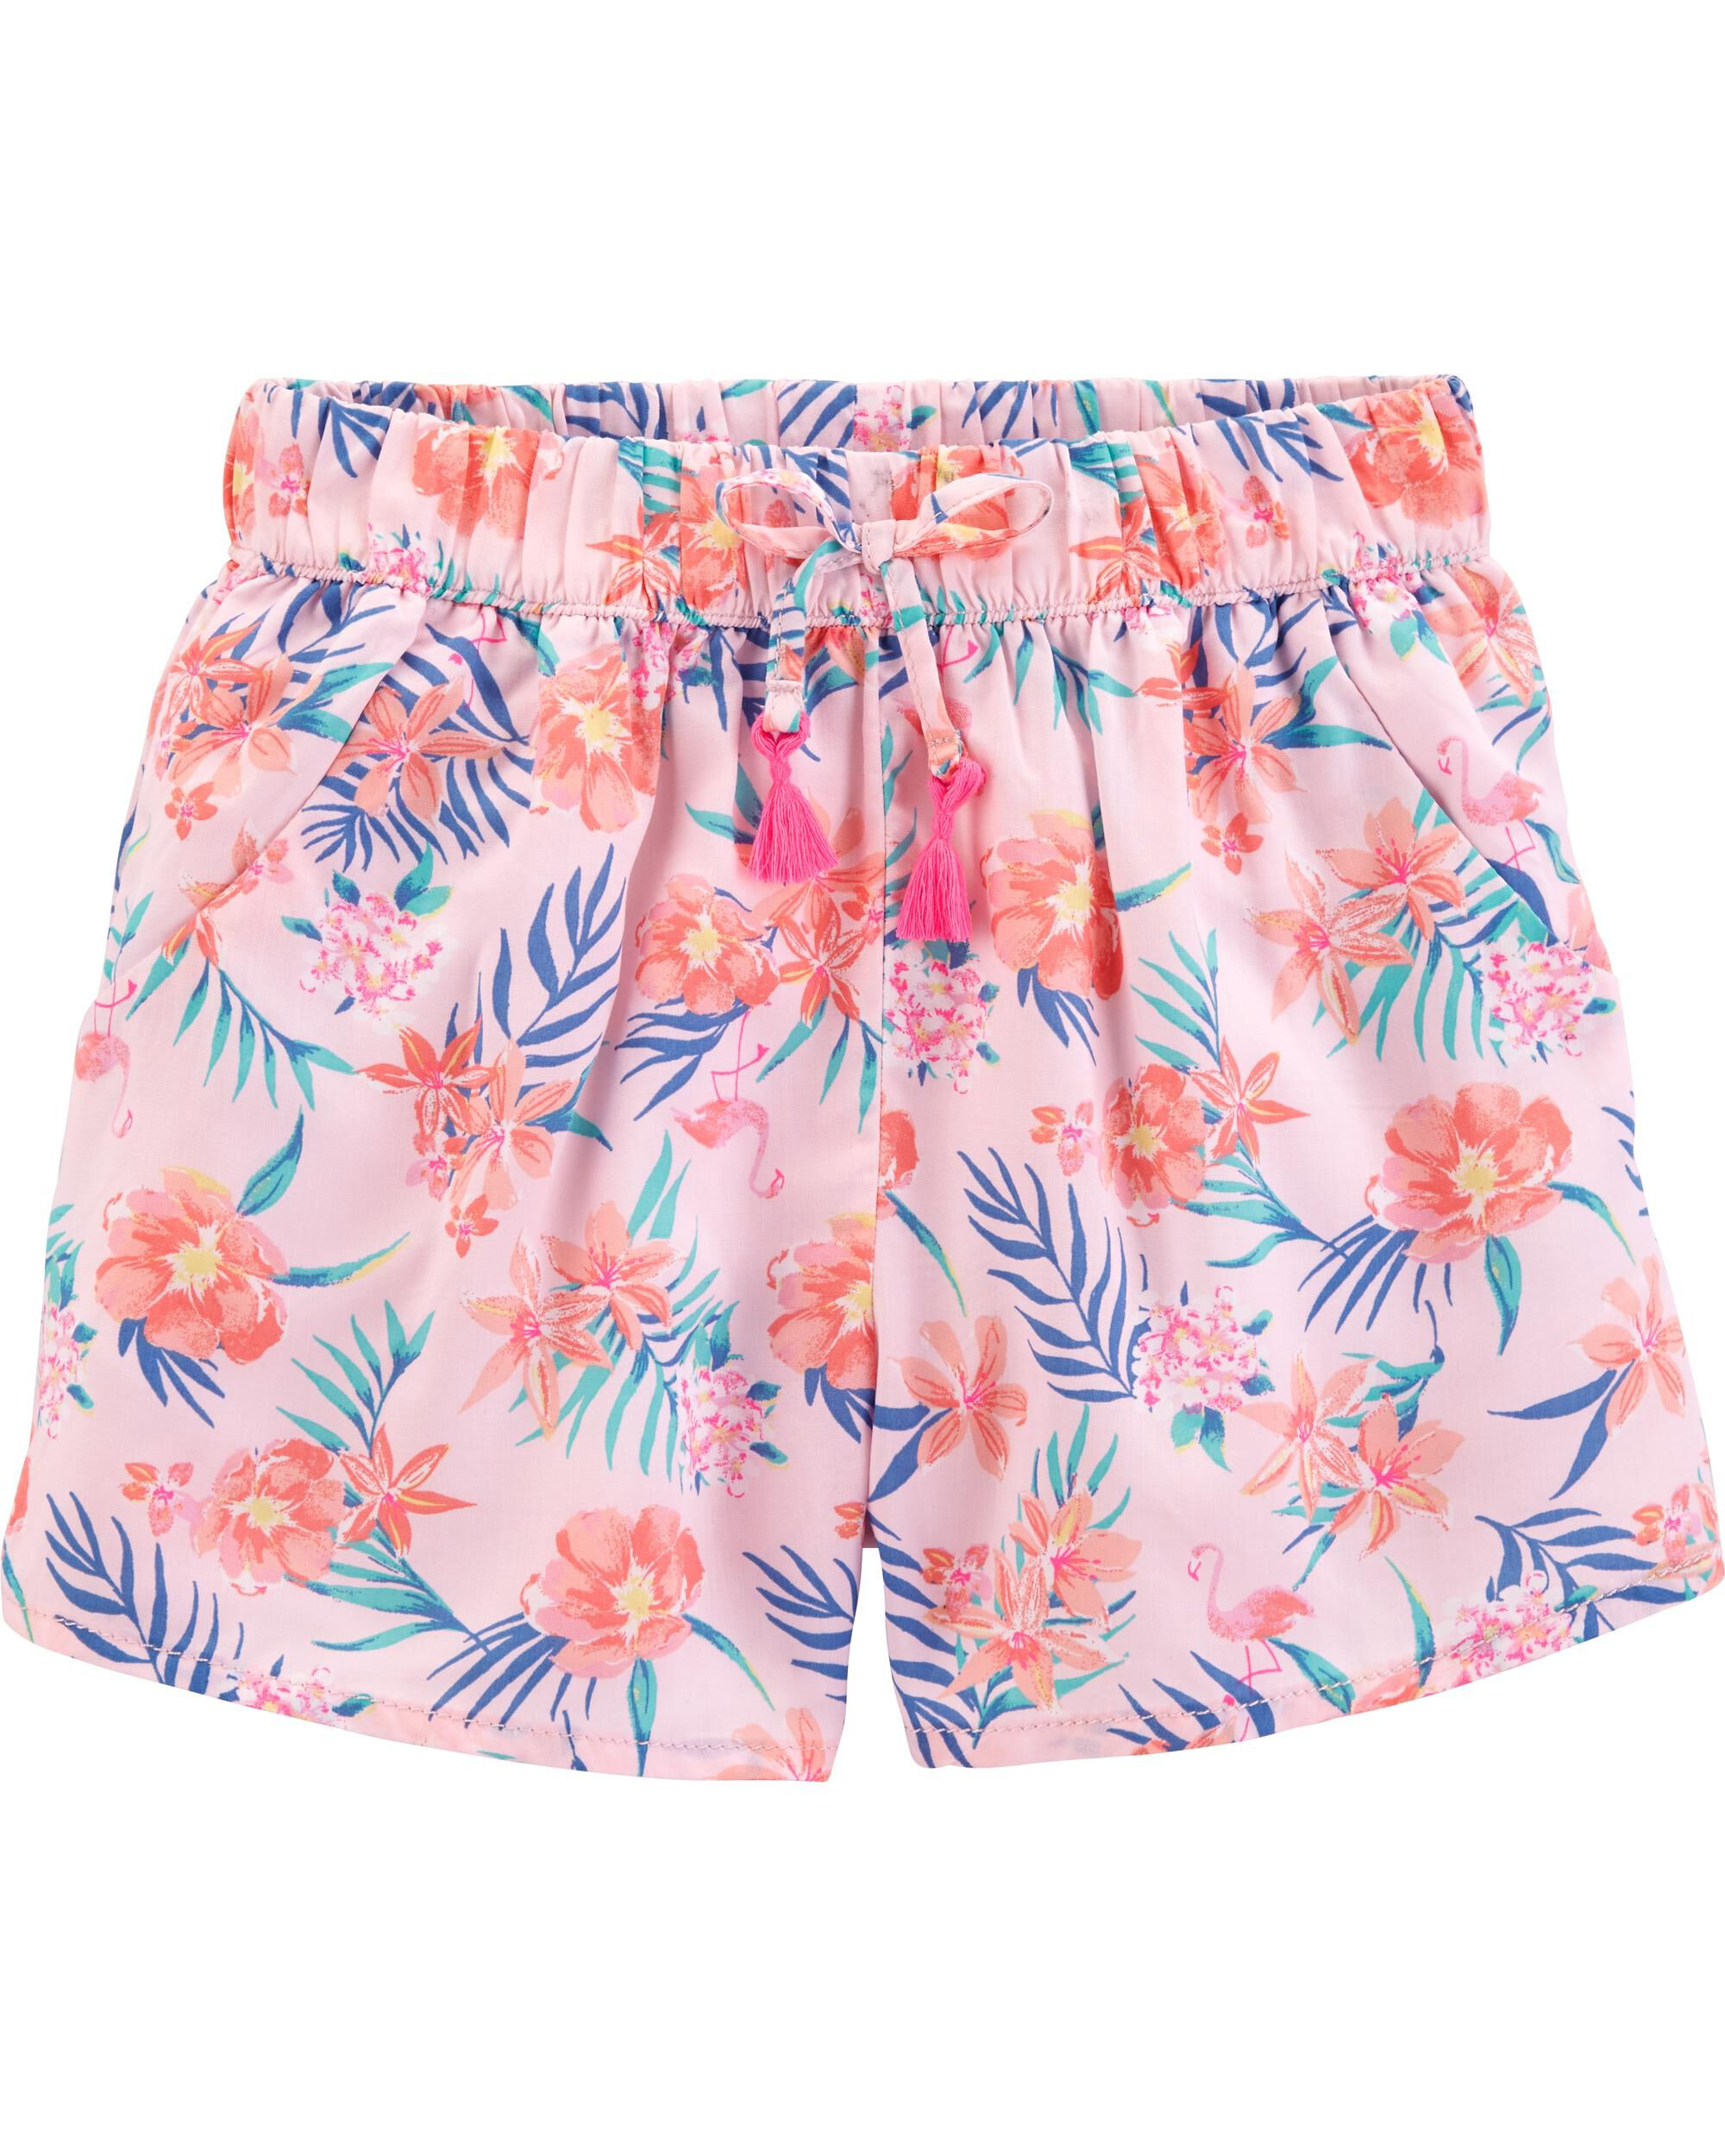 *Clearance*  Tropical Pull-On Shorts